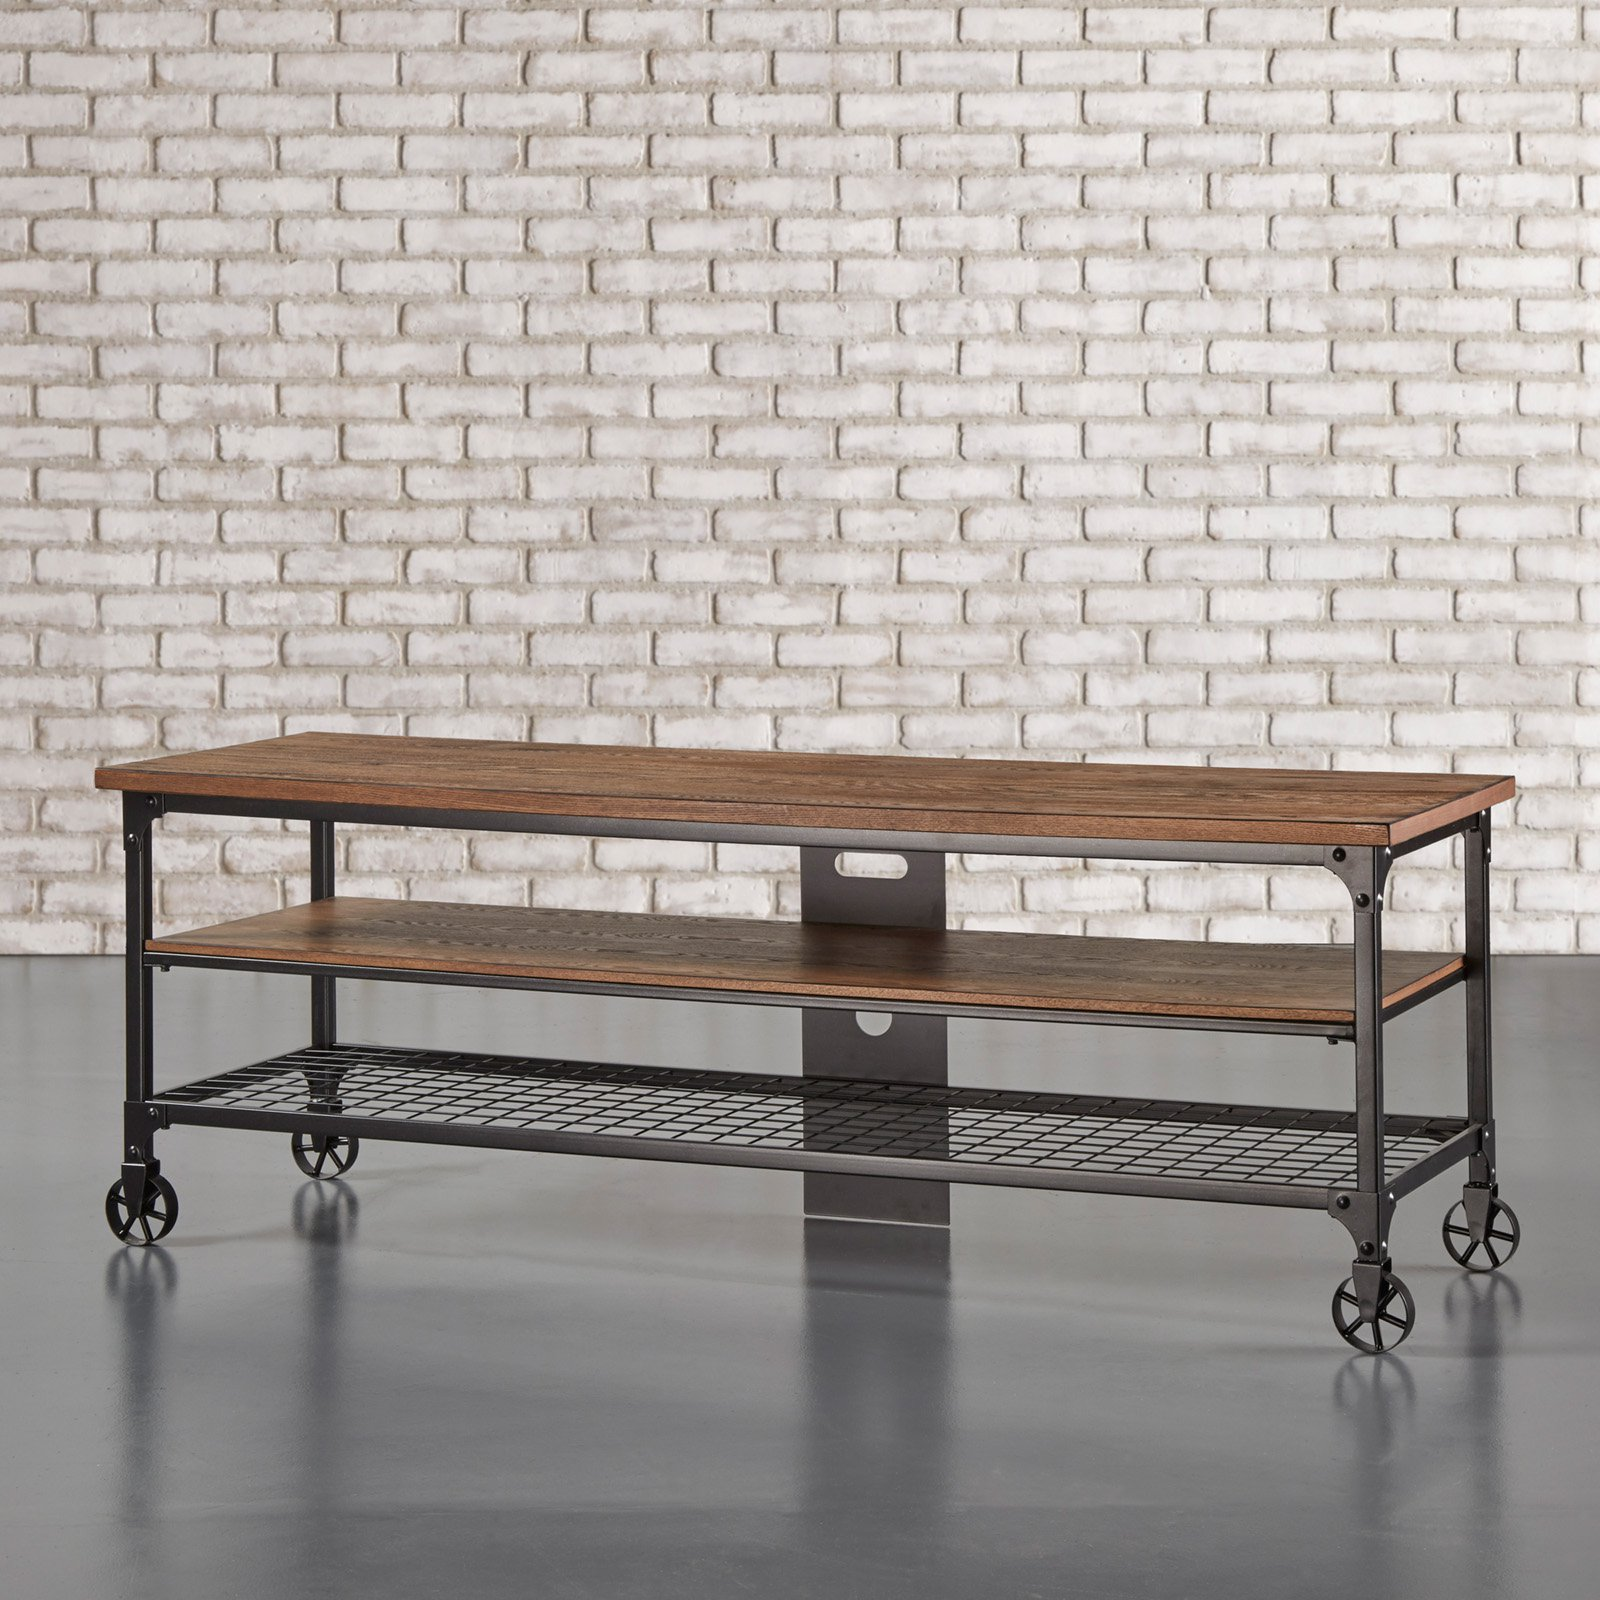 Weston Home Millwood Industrial TV Console Table